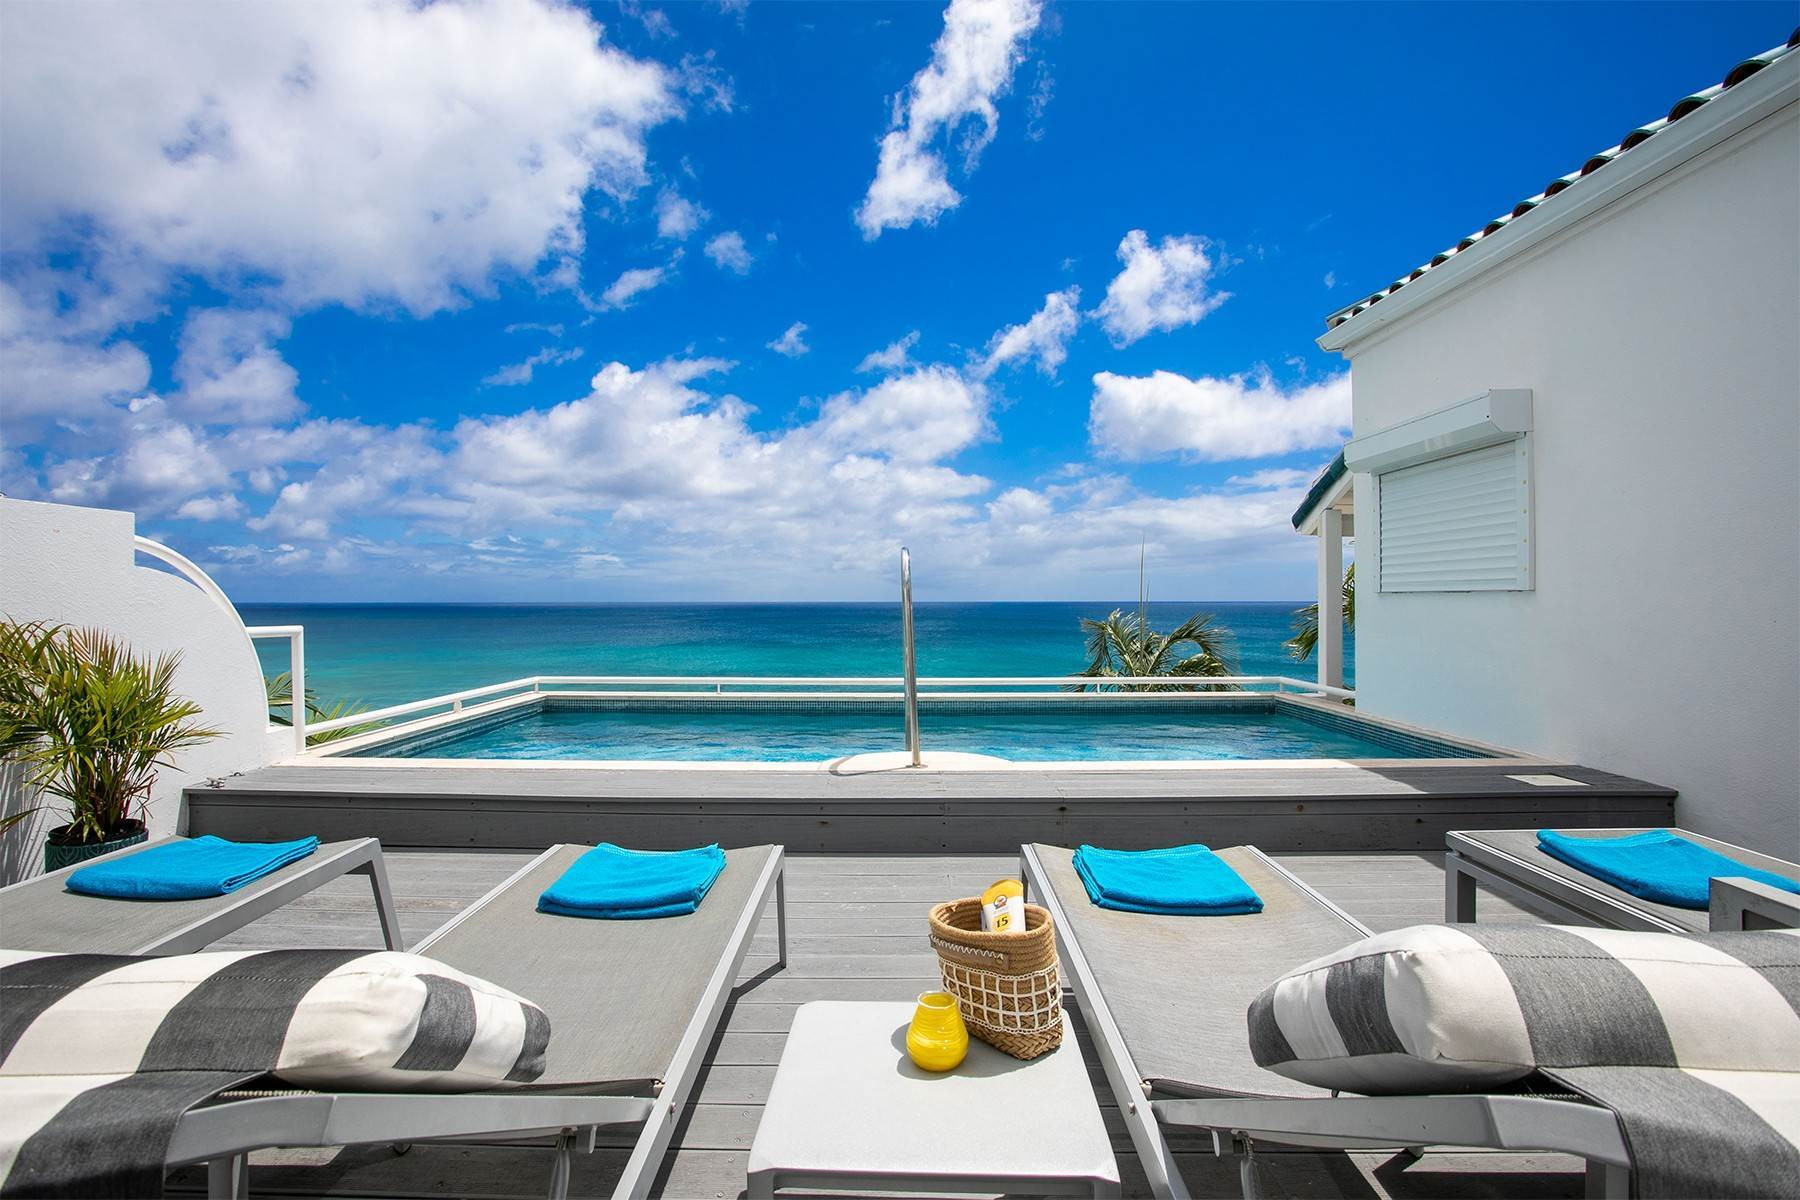 Single Family Homes for Sale at Sea Esta Cupecoy, St. Maarten